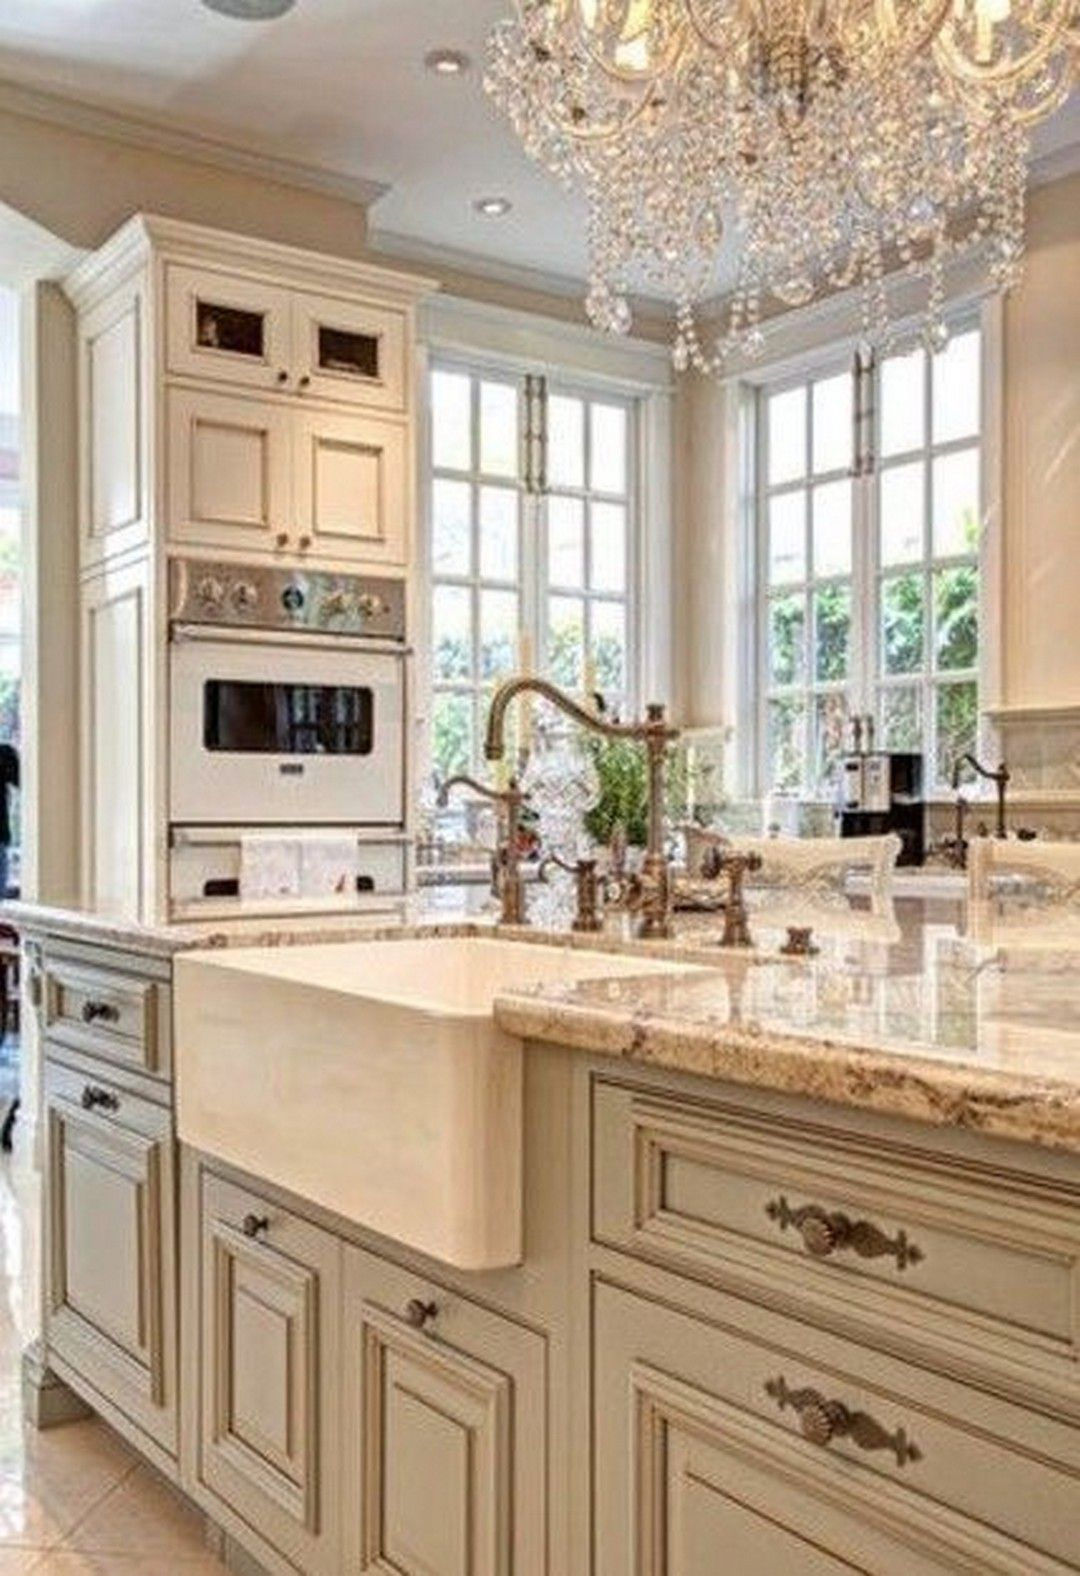 Luxury And Elegant Kitchen Design Inspiration With Images